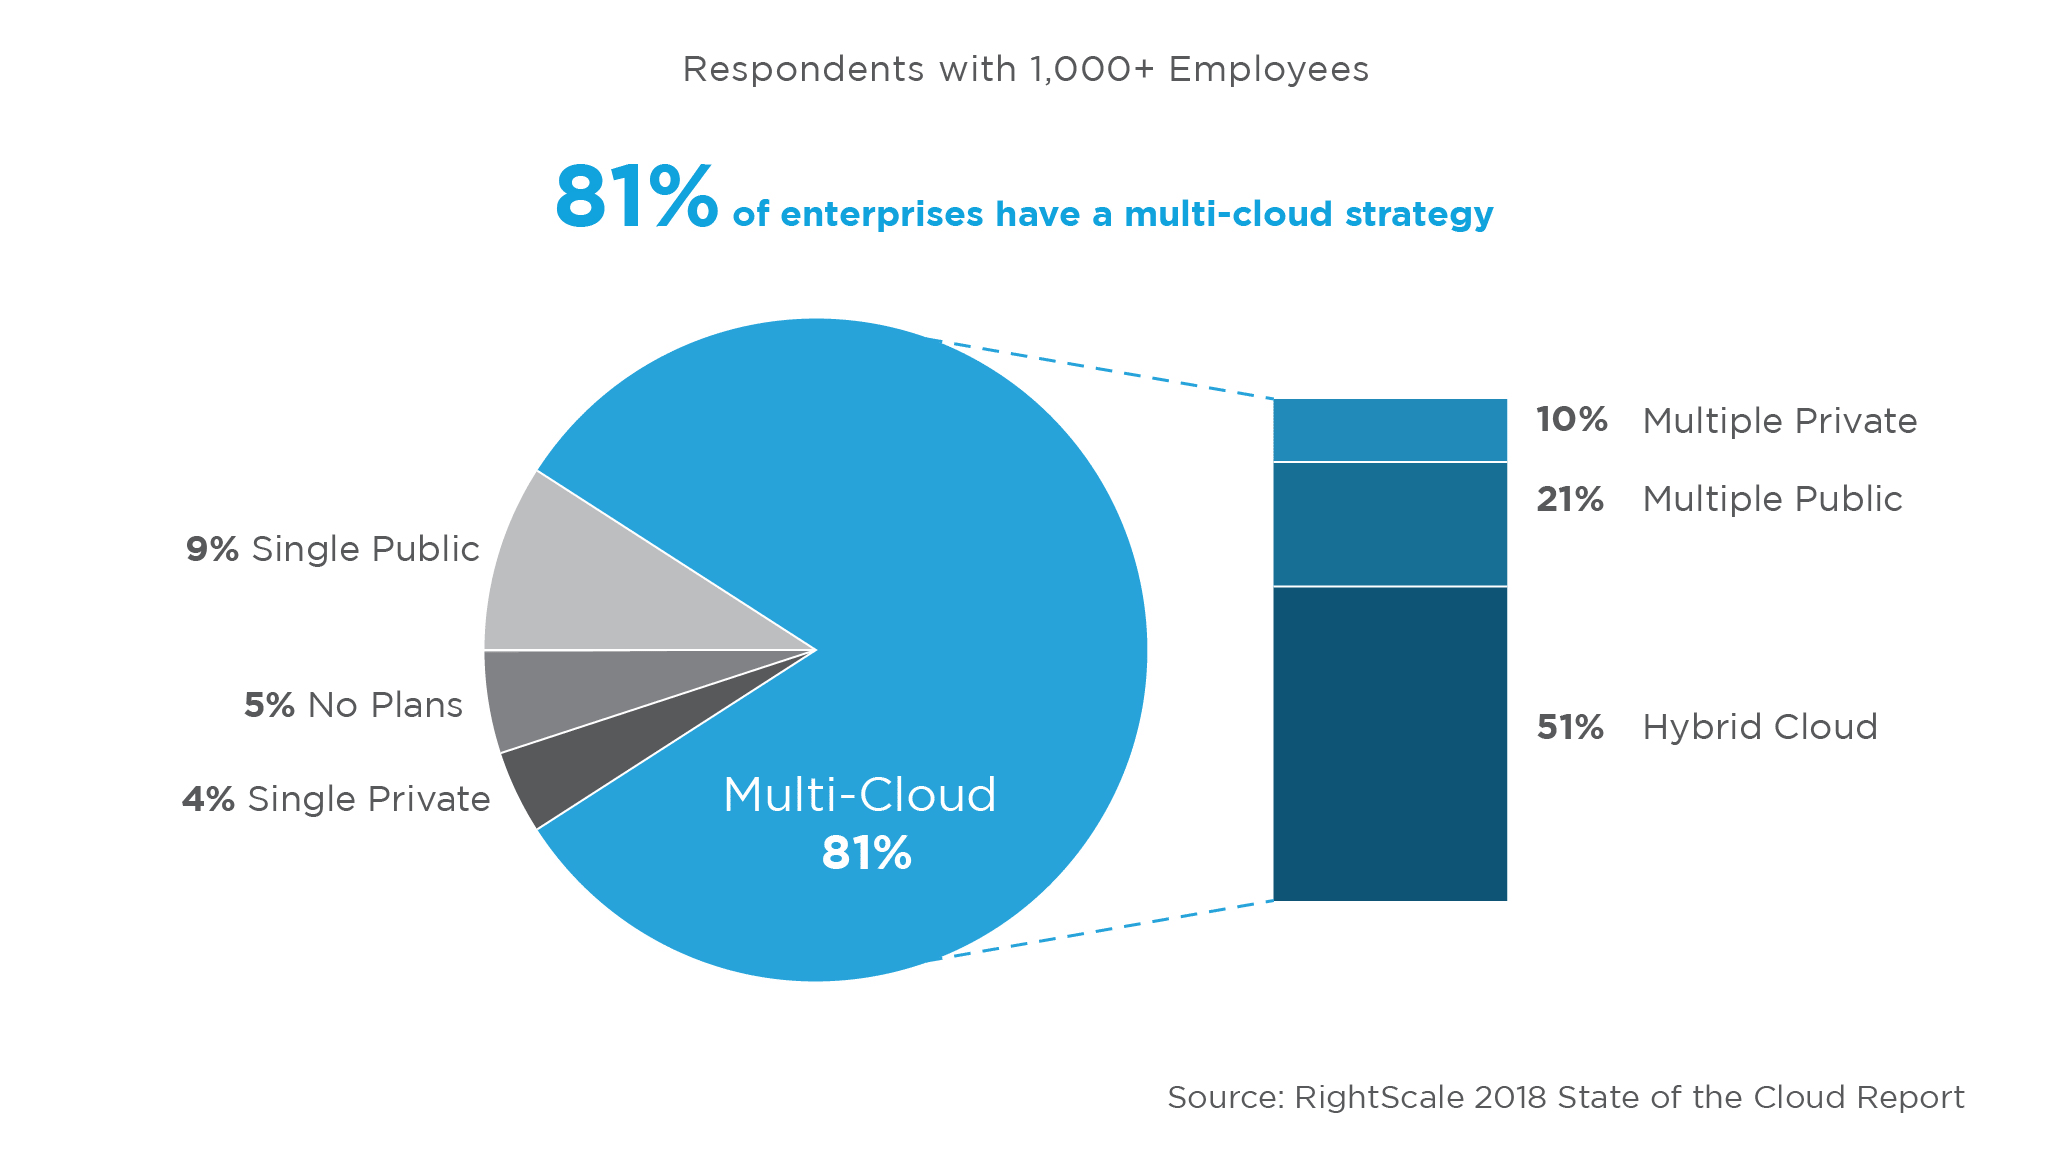 rightscale-state-of-the-cloud-report-multi-cloud-strategy